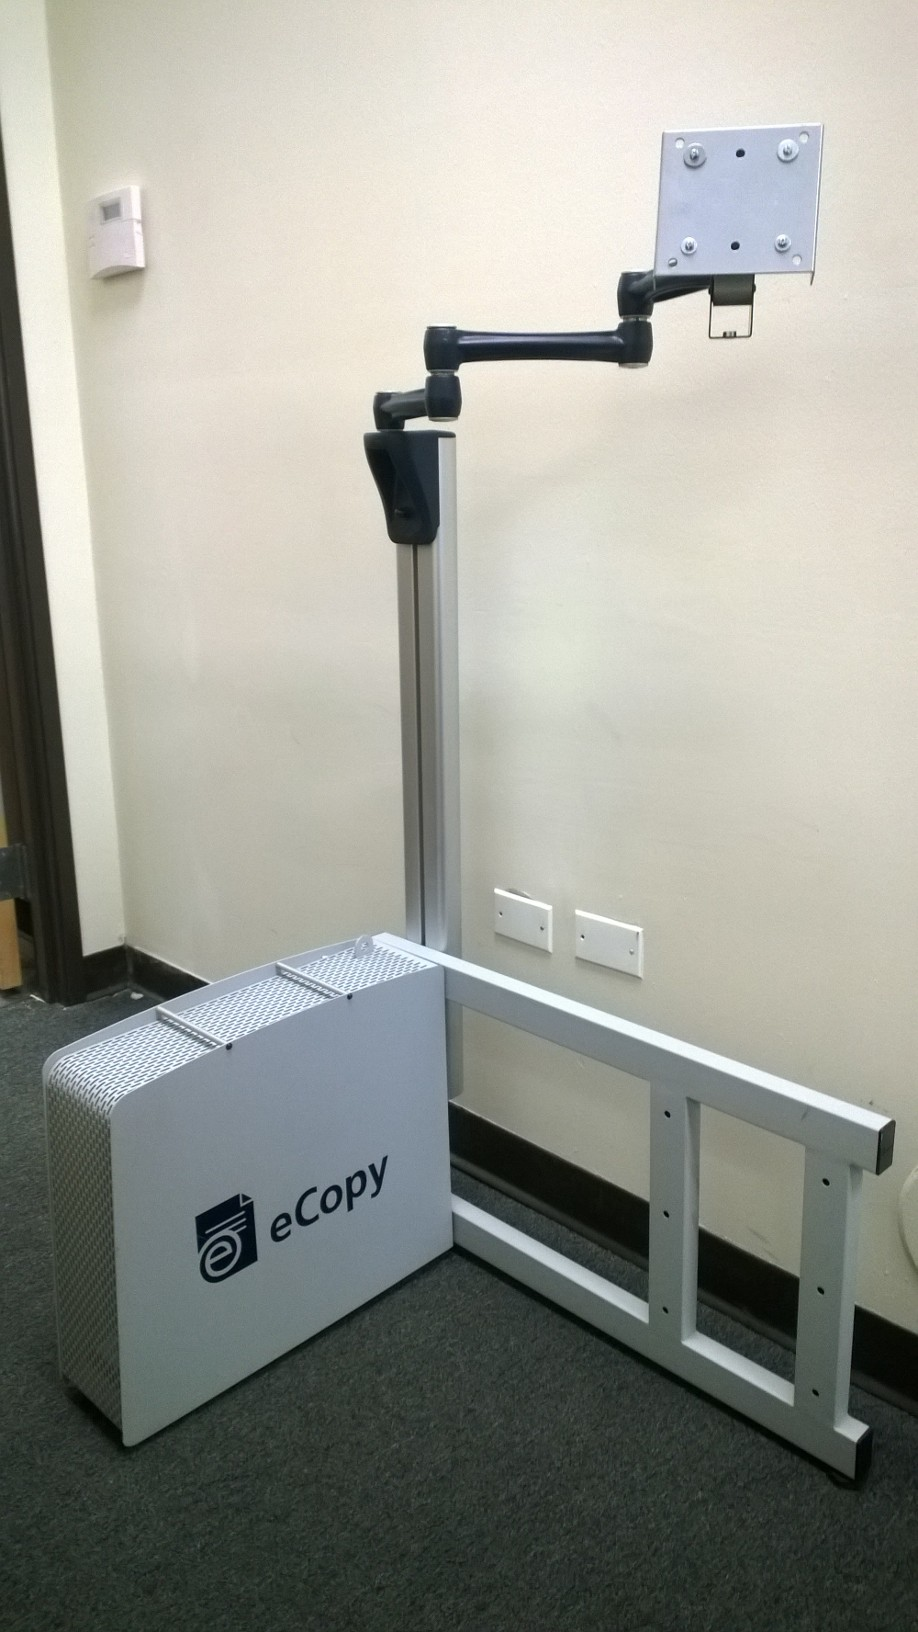 eCopy Computer & Monitor Stand